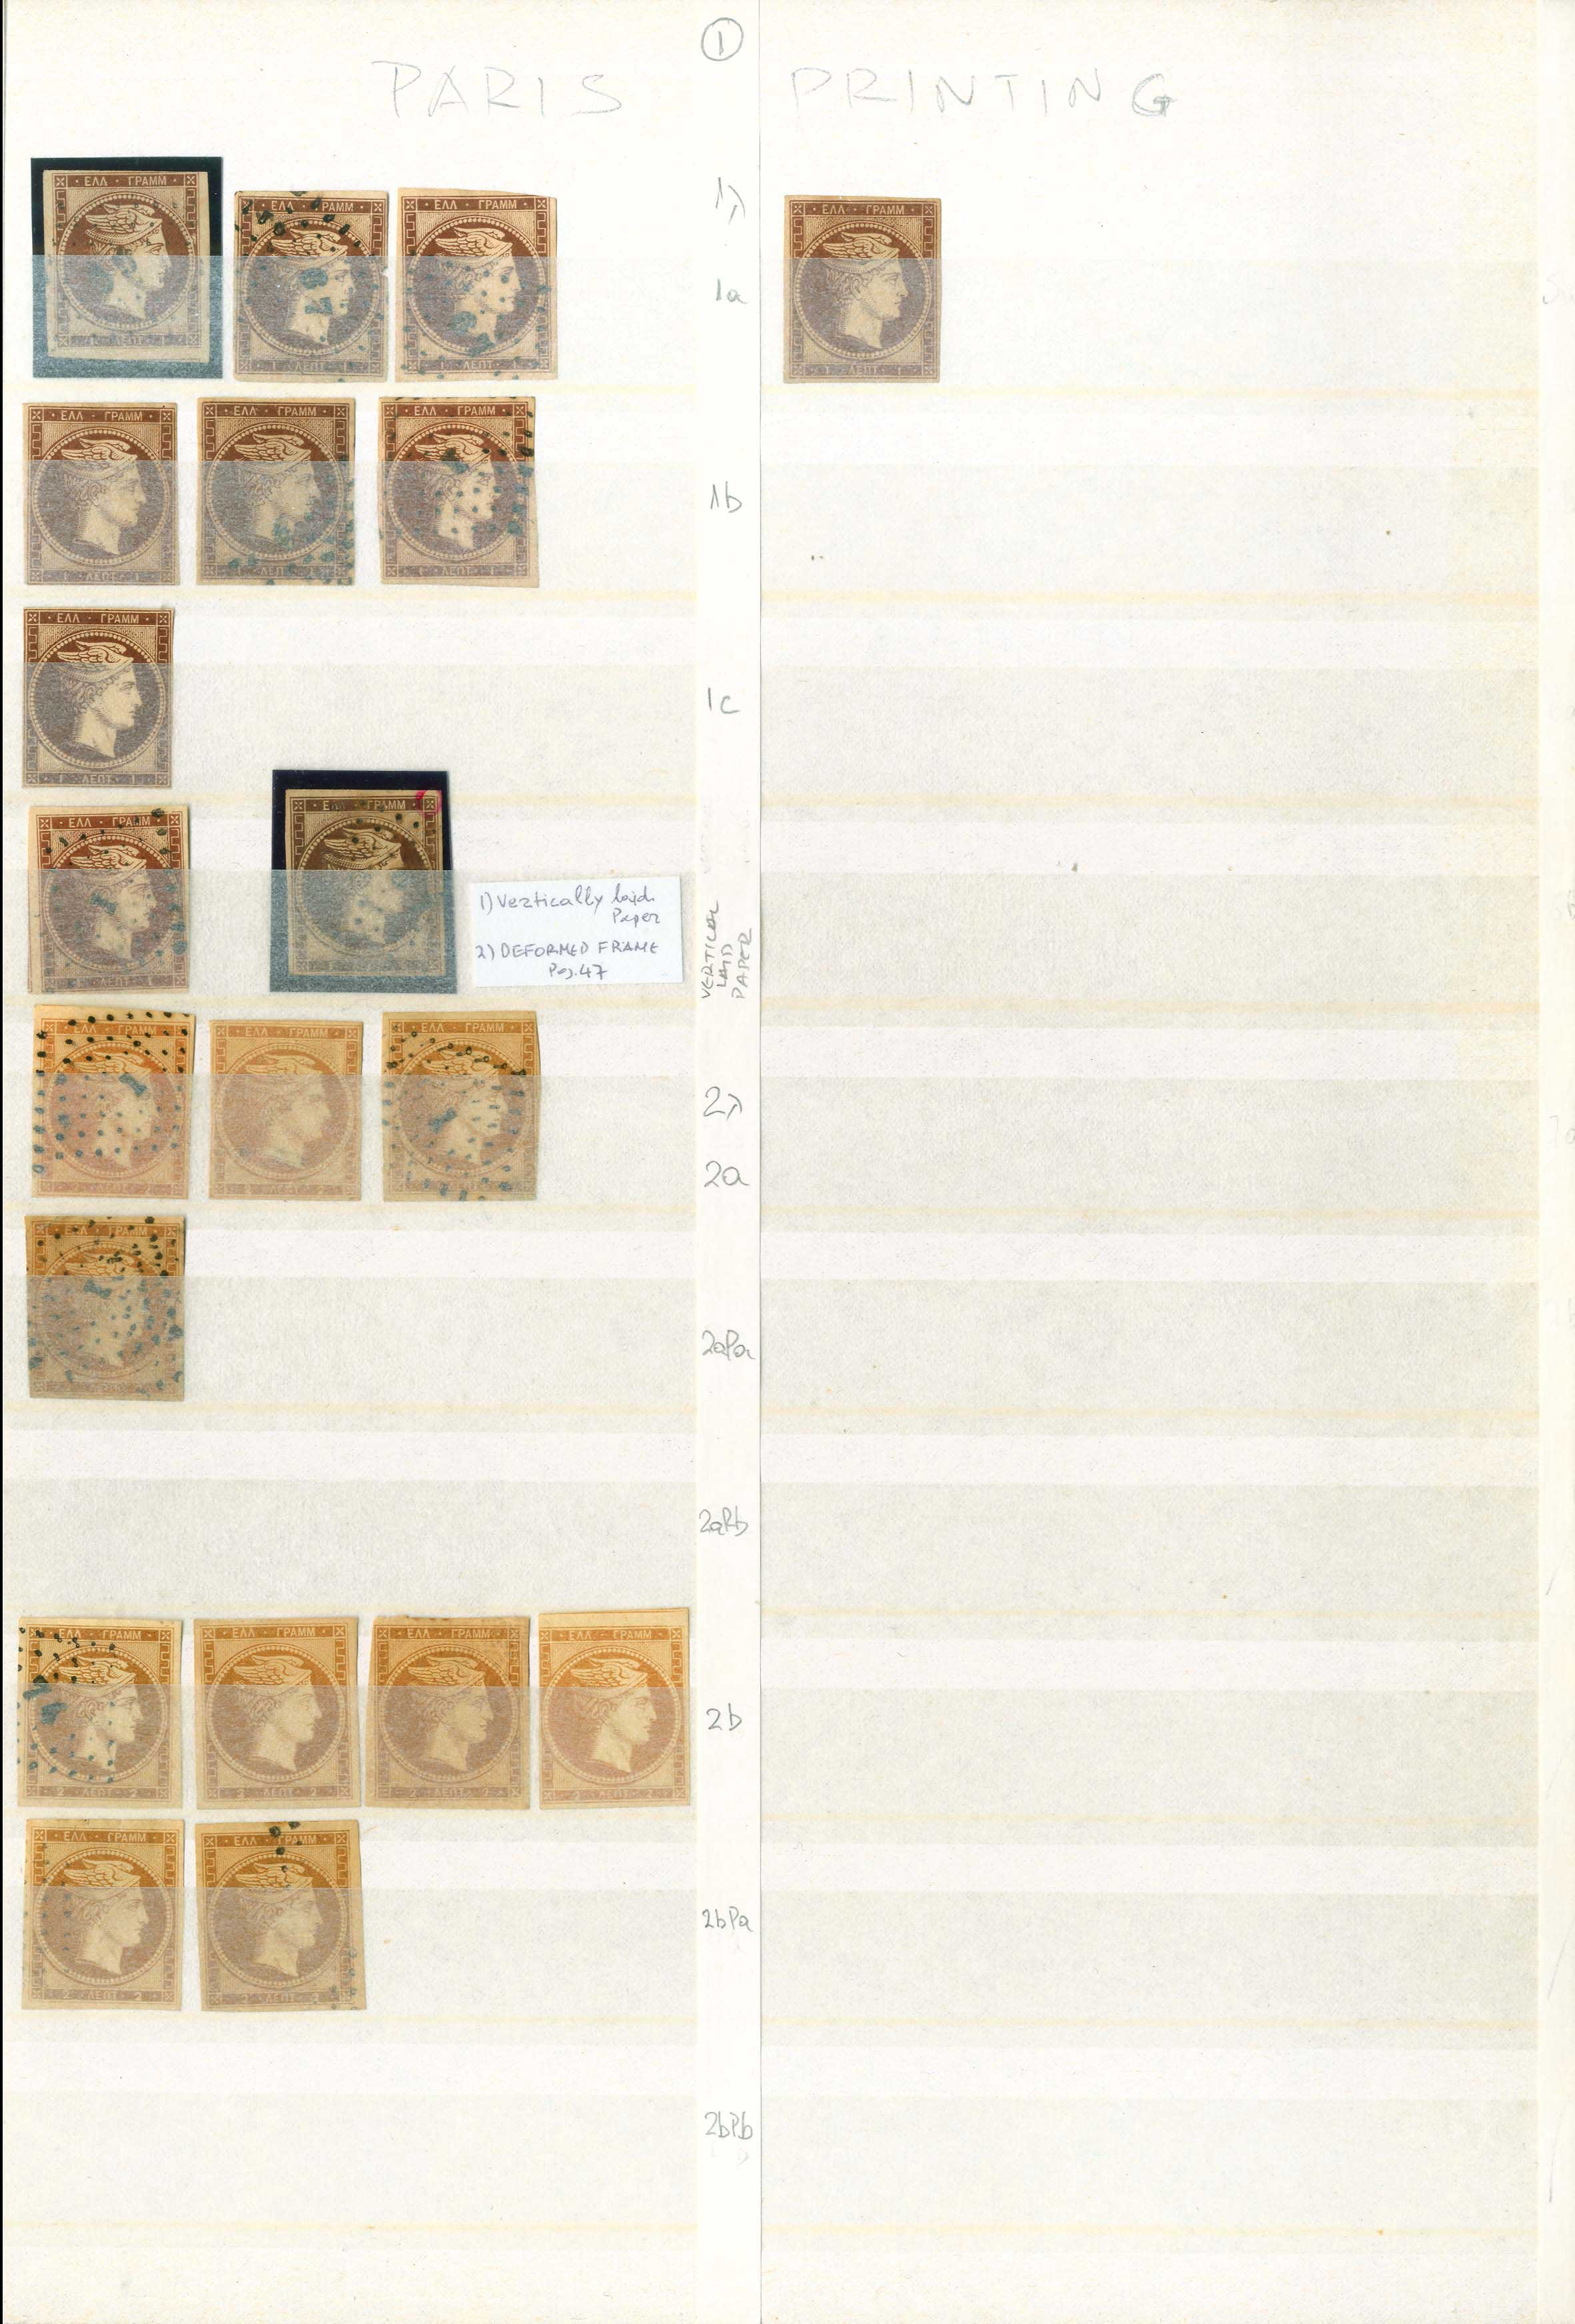 Lot 1 - -  LARGE HERMES HEAD large hermes head -  A. Karamitsos Public Auction 637 General Stamp Sale